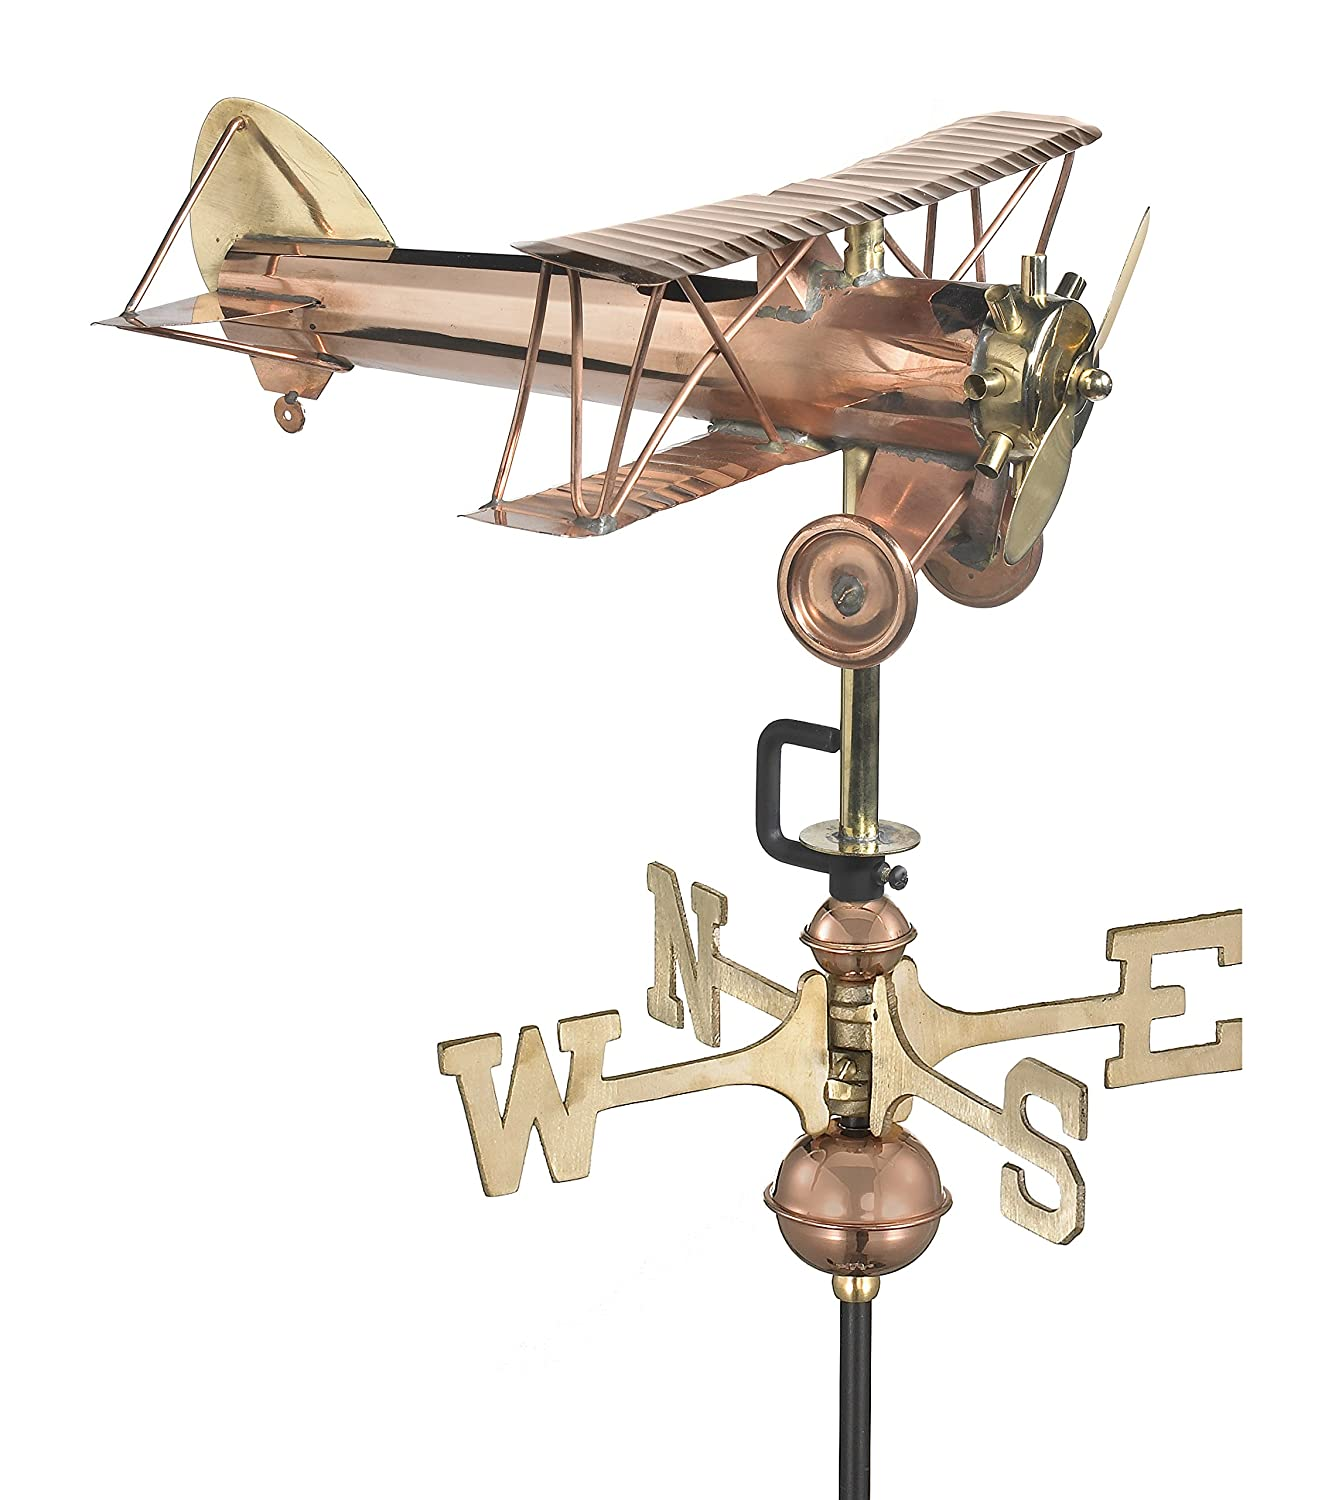 Good Directions Biplane Weathervane with Garden Pole, Pure Copper, Airplane Weathervanes, Aviation Décor Aviation Décor 8812PG